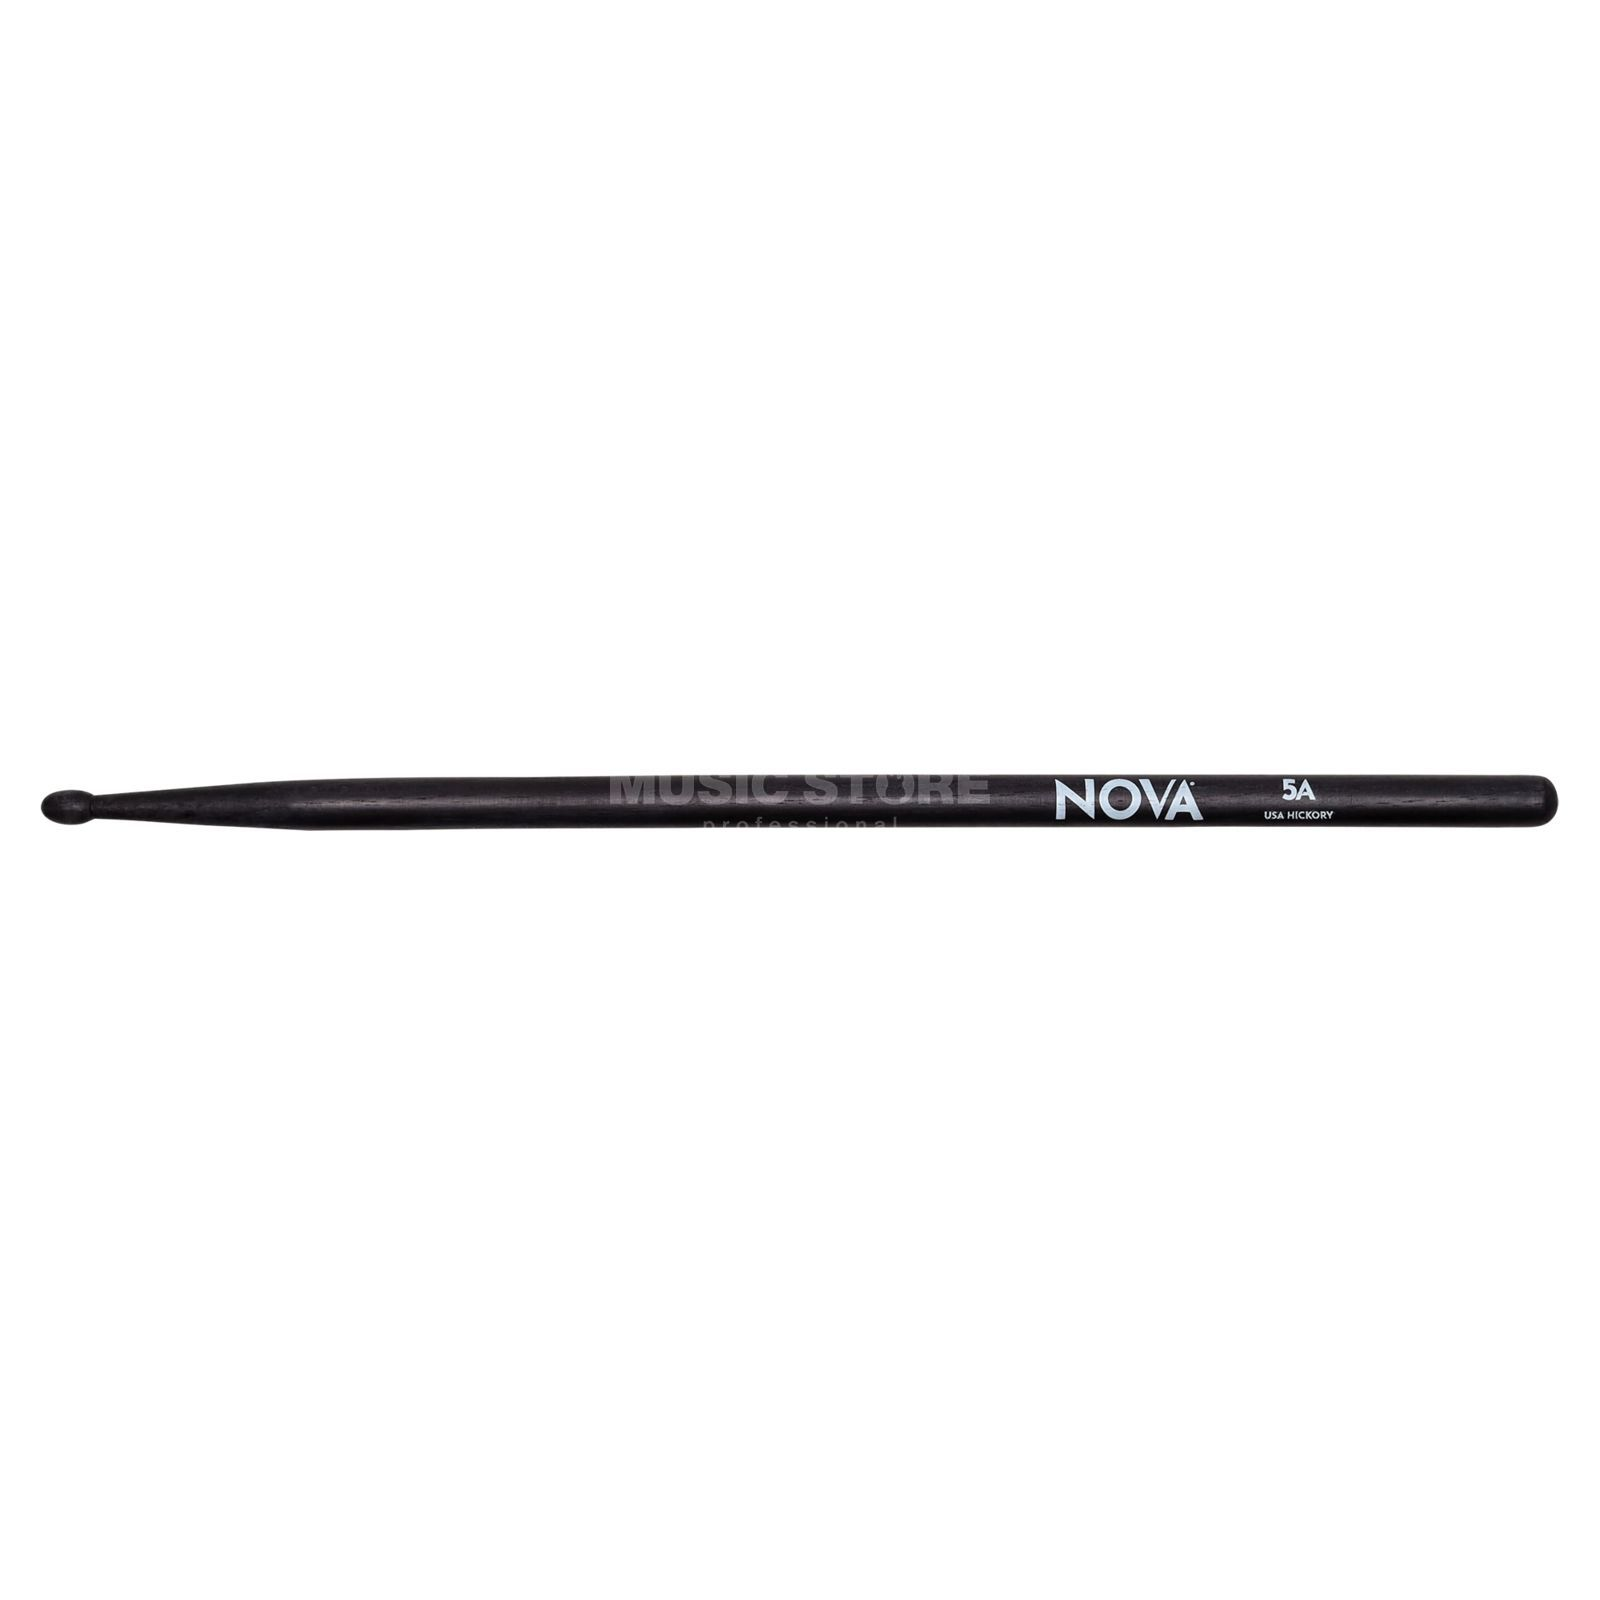 Vic-Firth Nova Drum Sticks 5AB, Wood Tip Produktbild